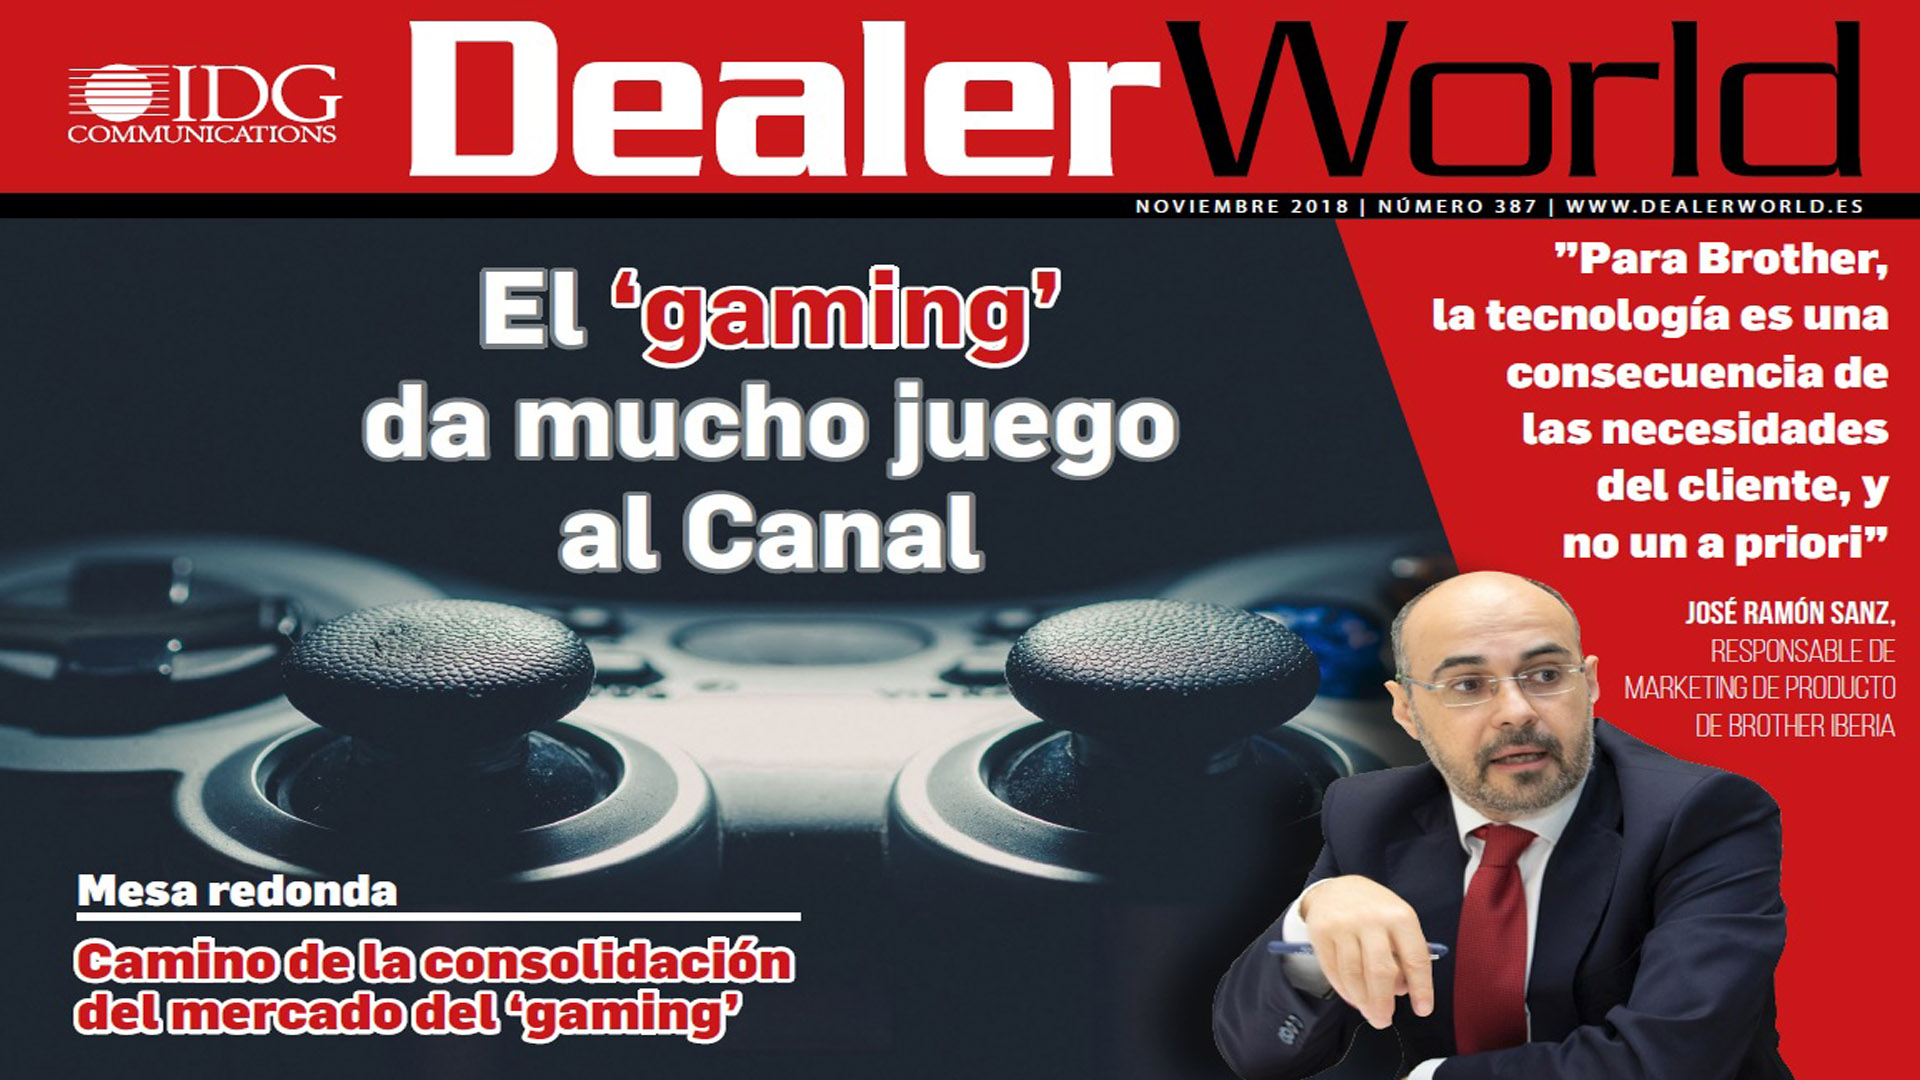 Portada DealerWorld 387